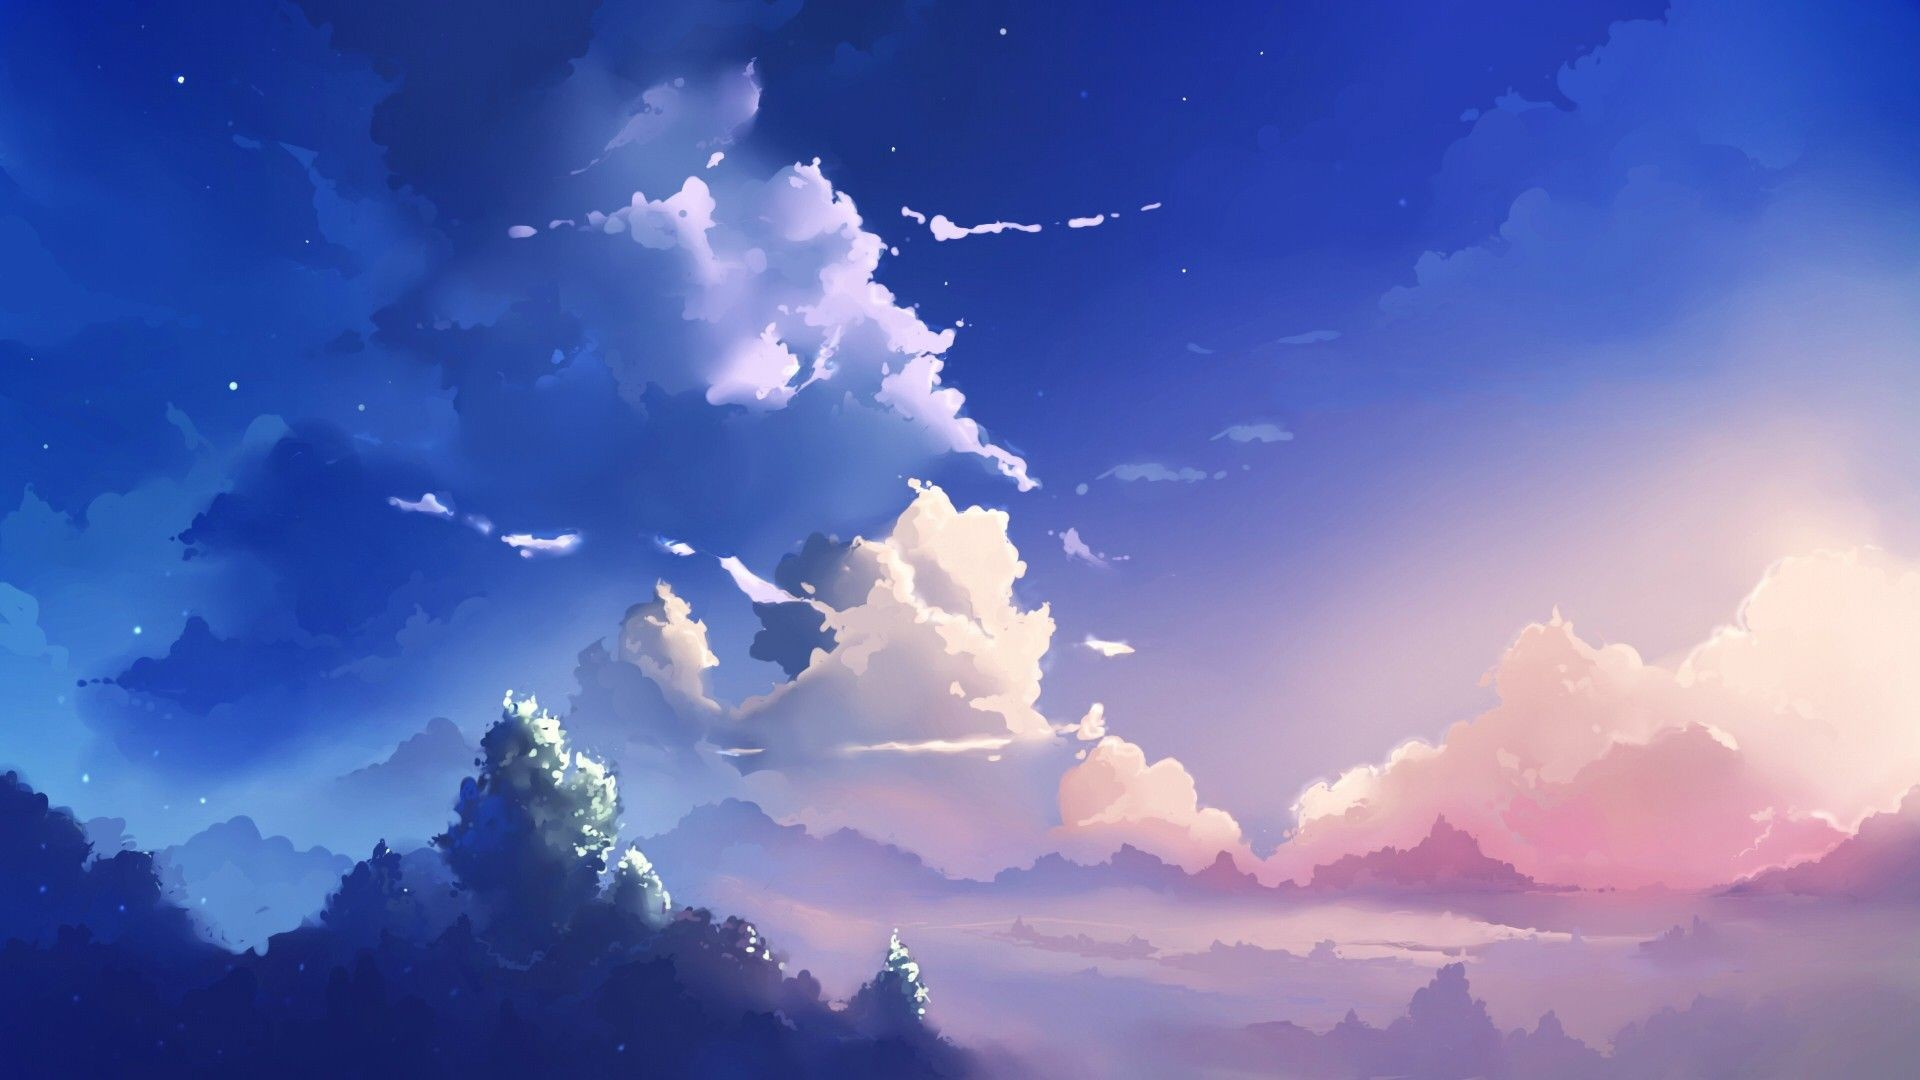 Peaceful Anime Wallpaper 80 Images